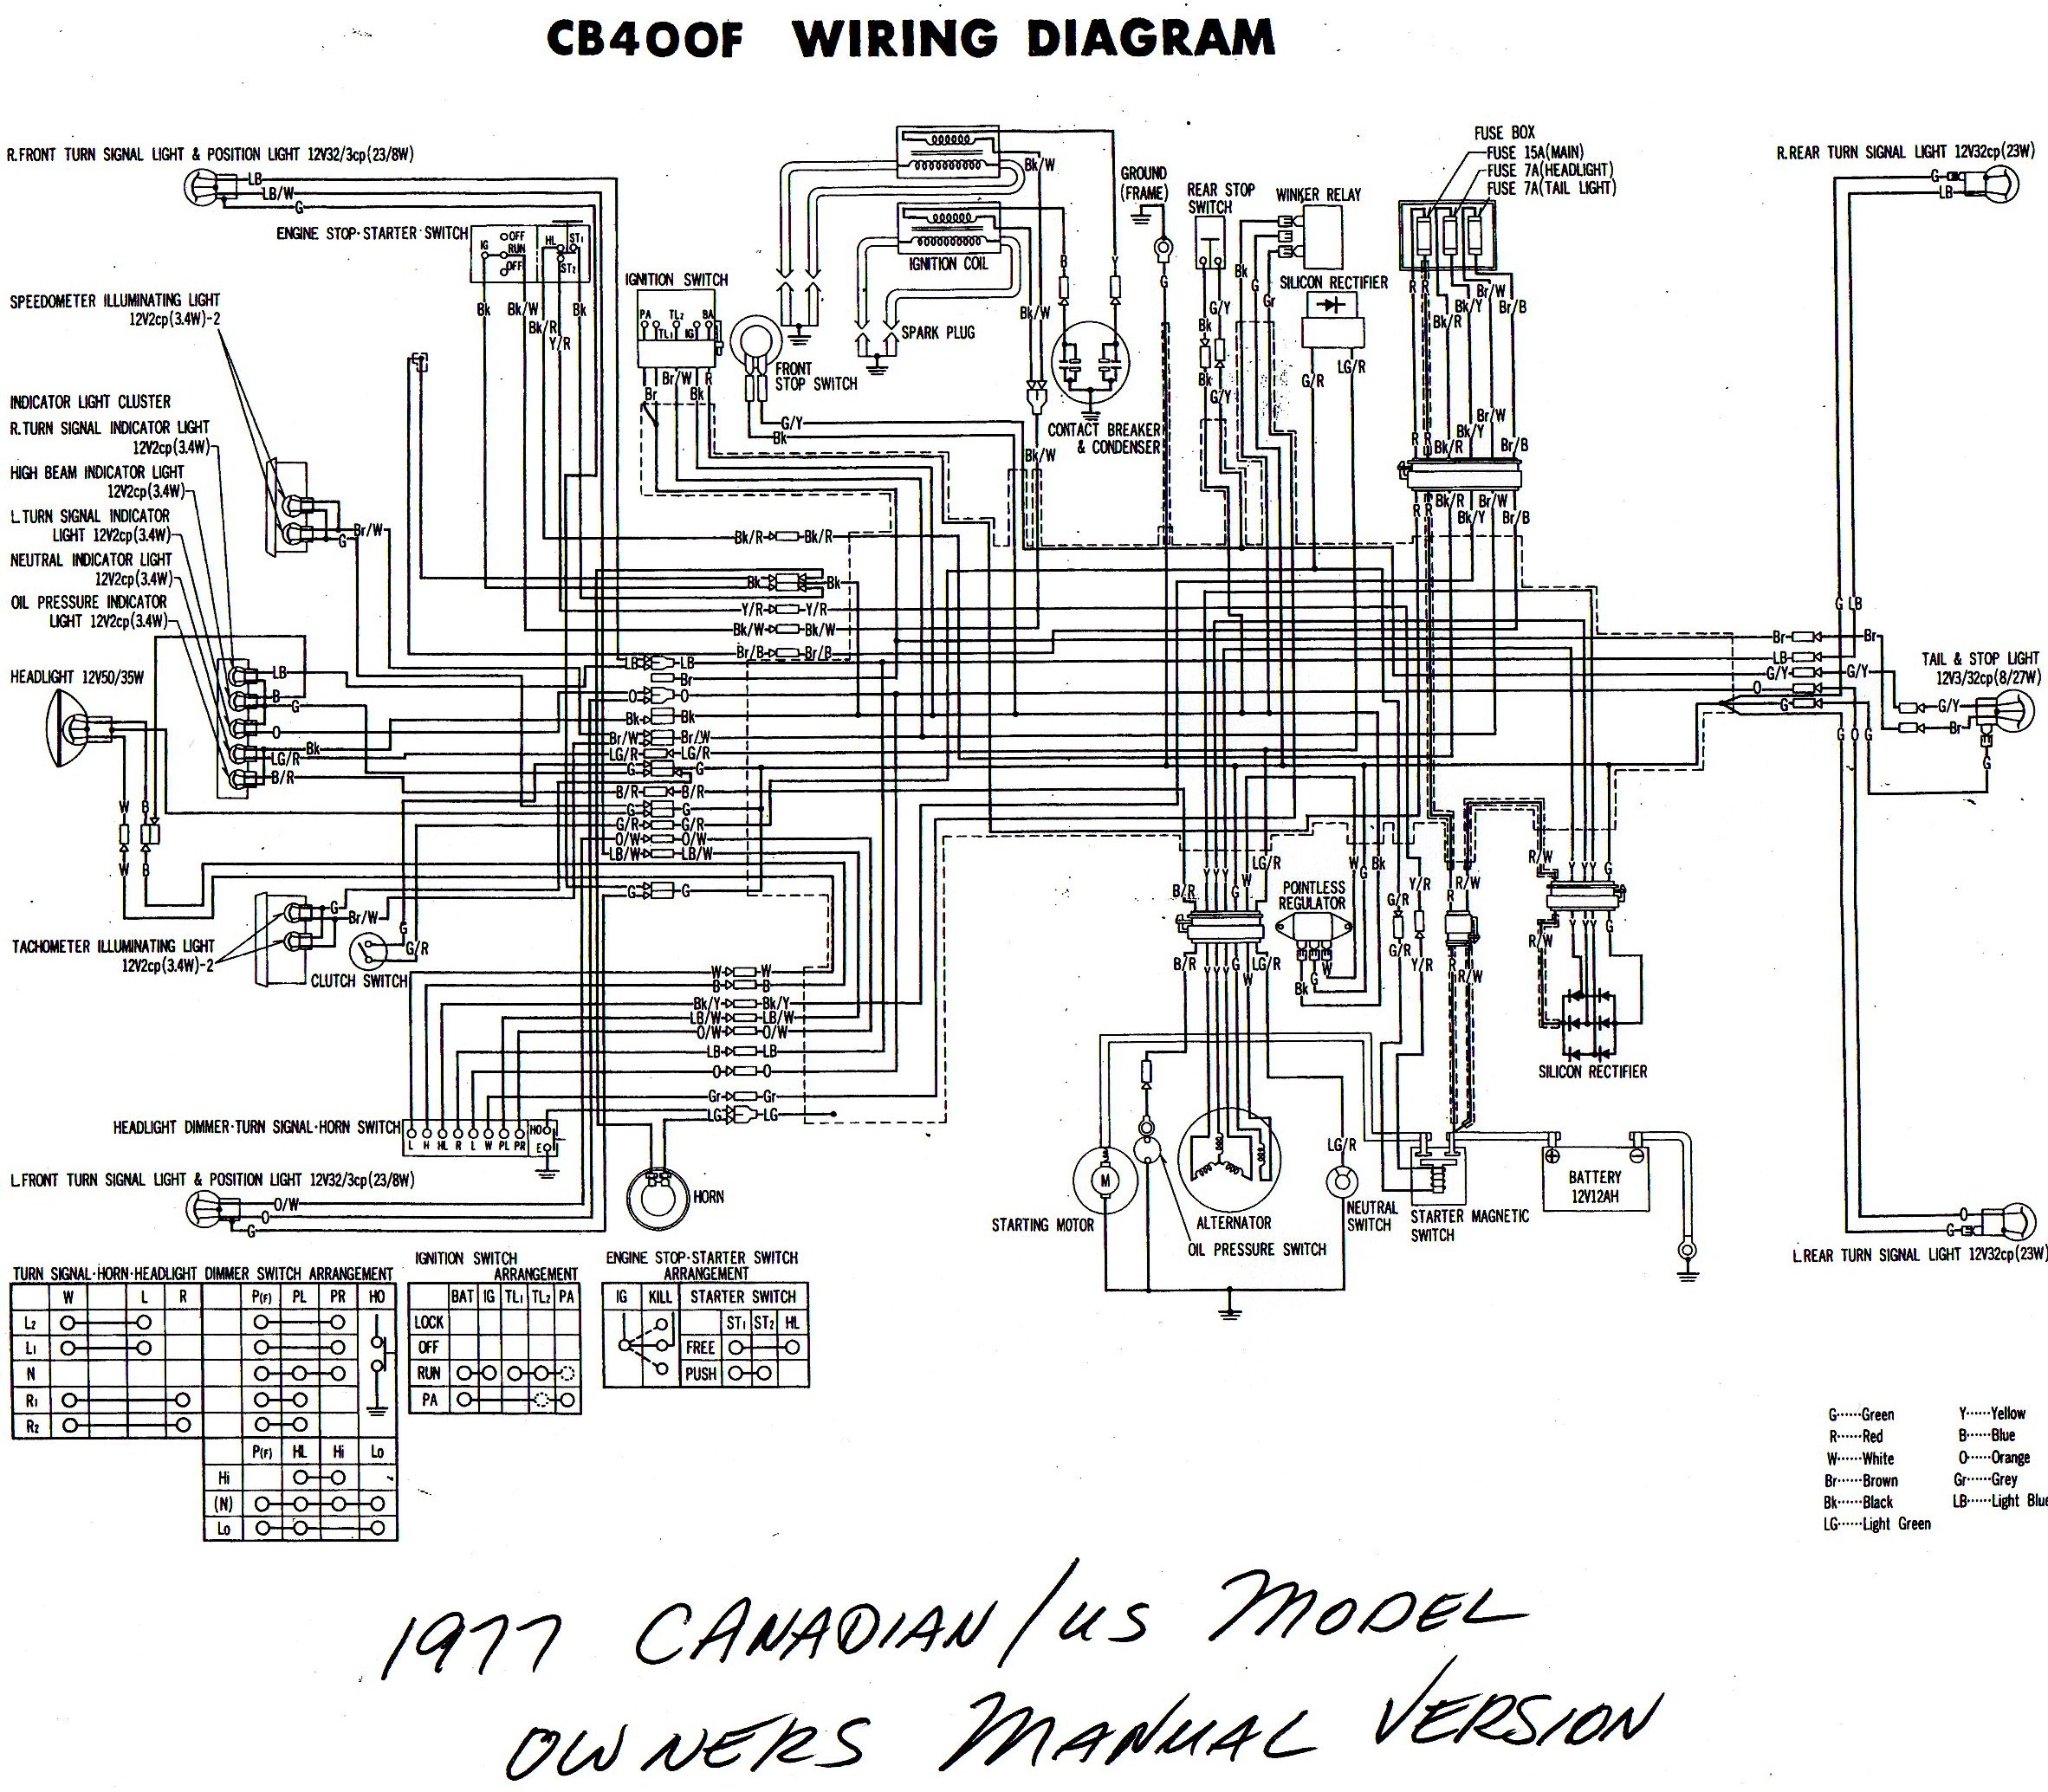 cb400f cb350 cb400 wiring diagram color